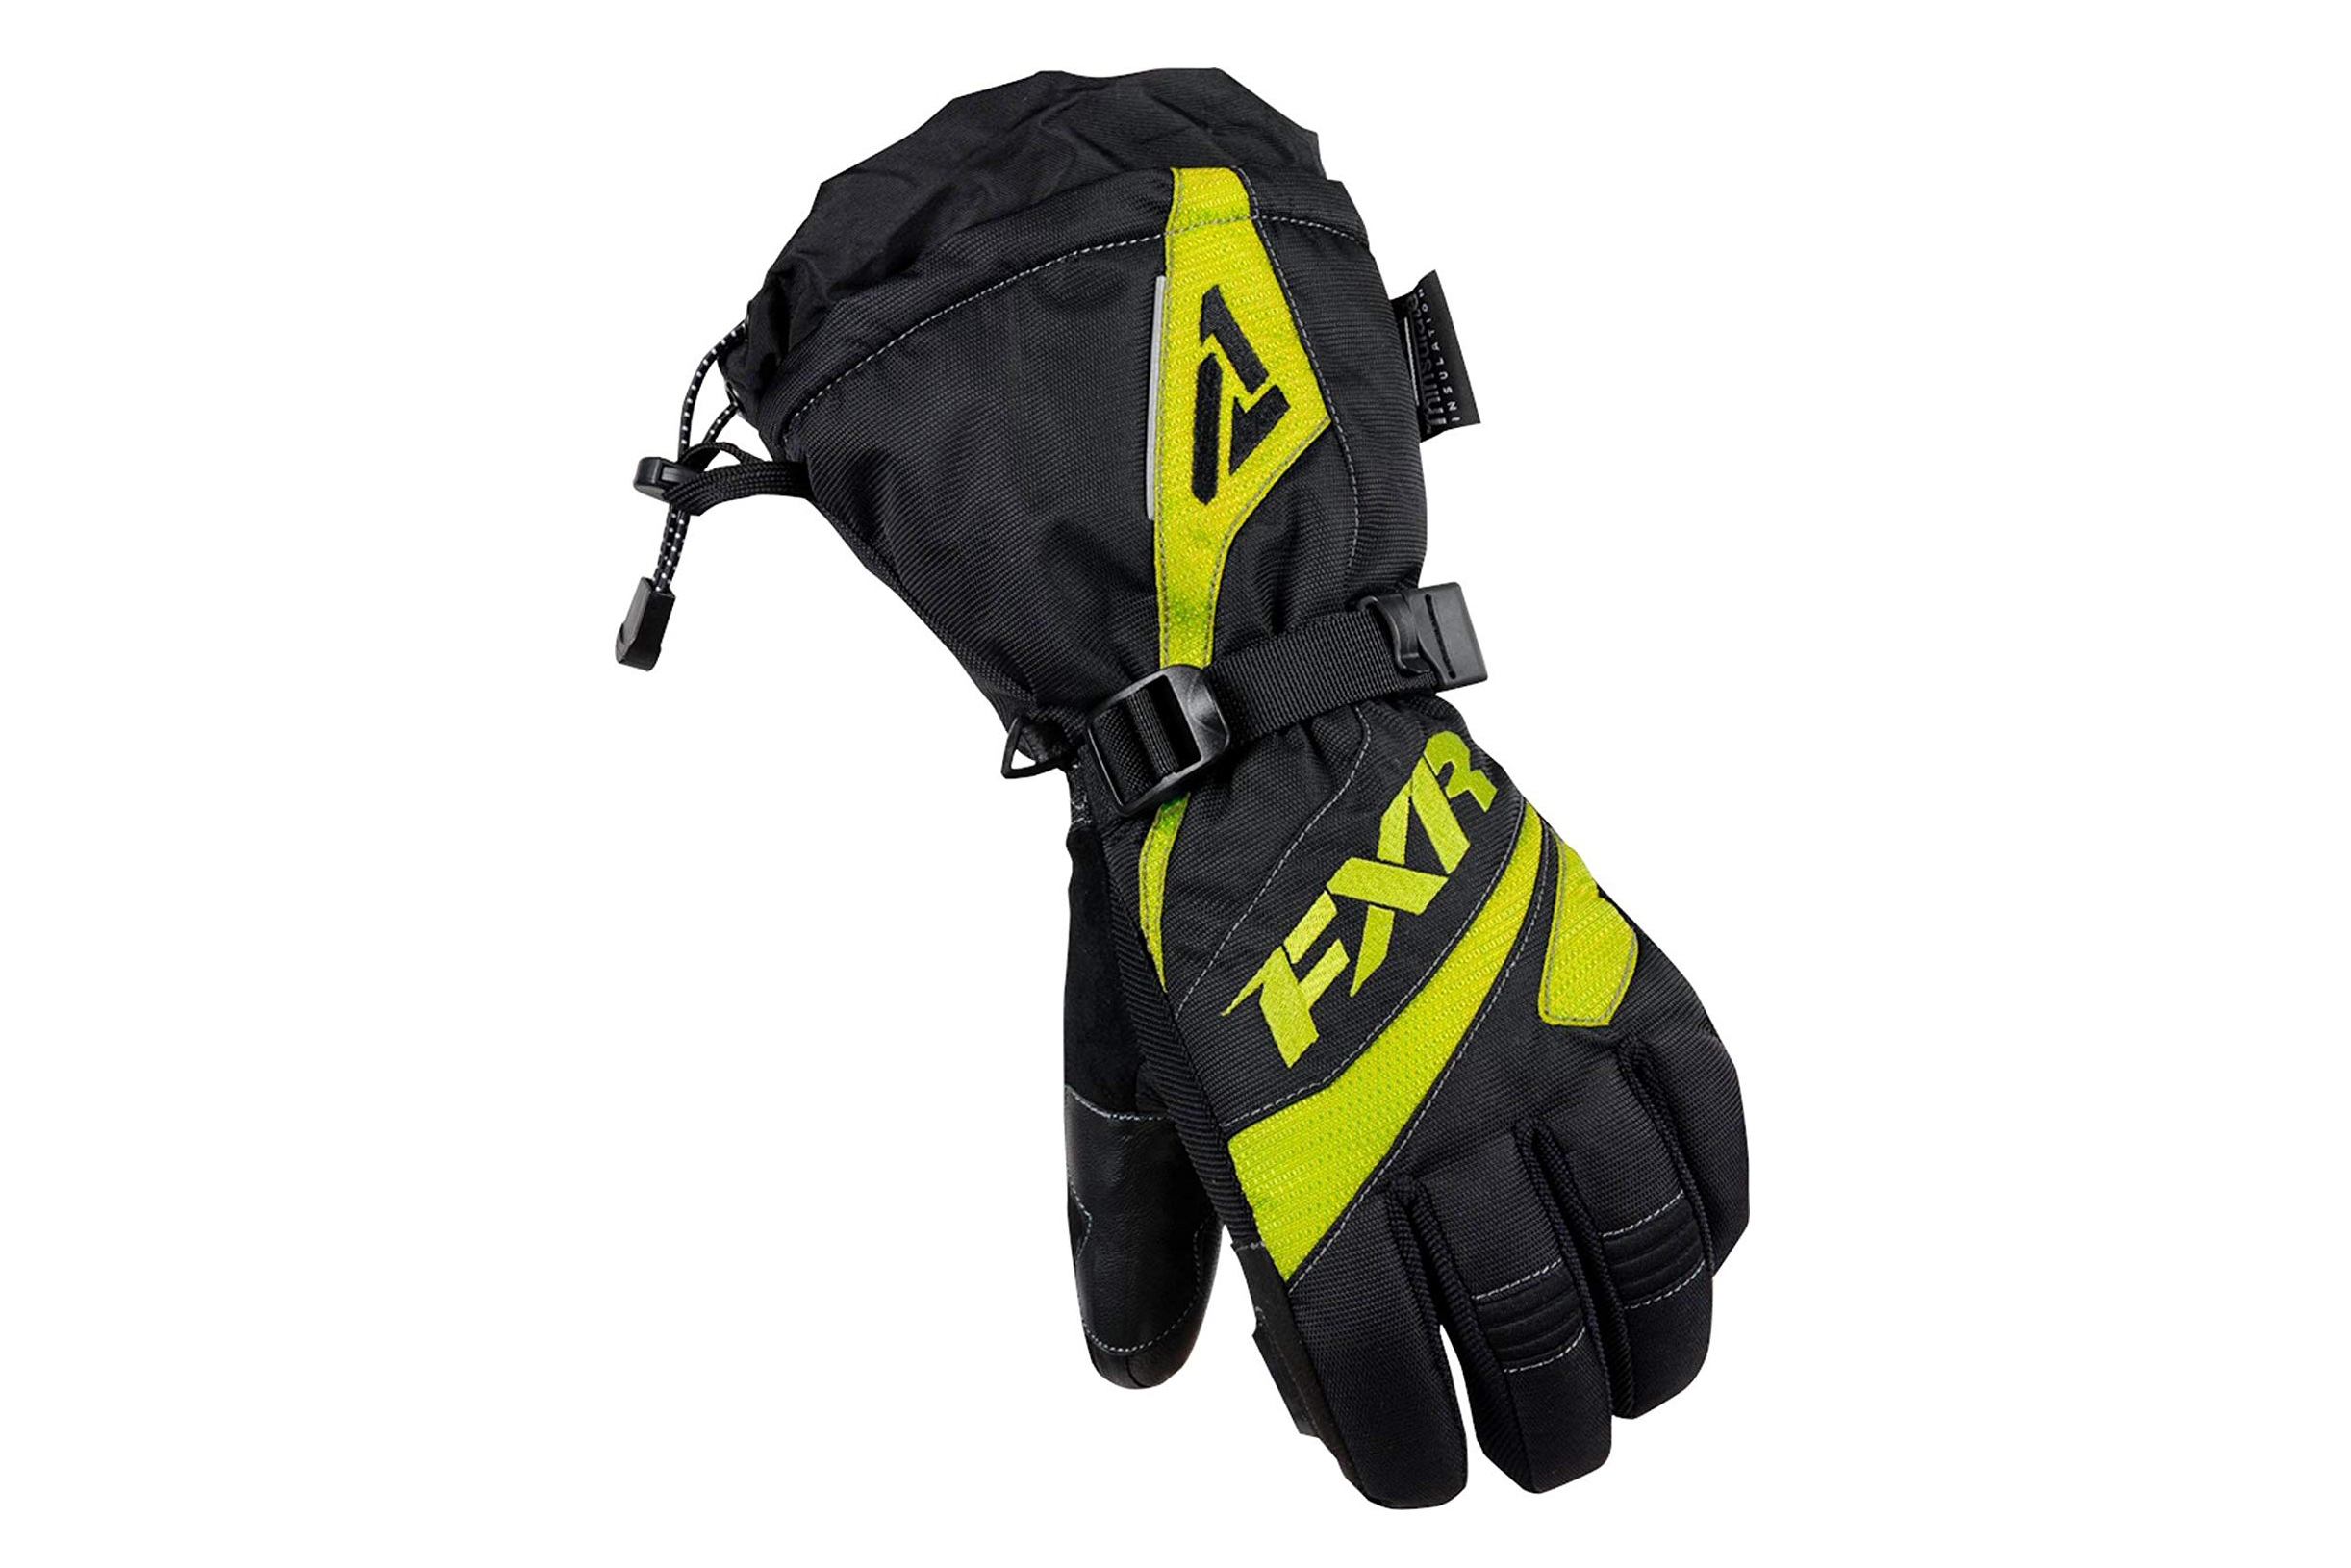 FXR Fusion Waterproof Glove: